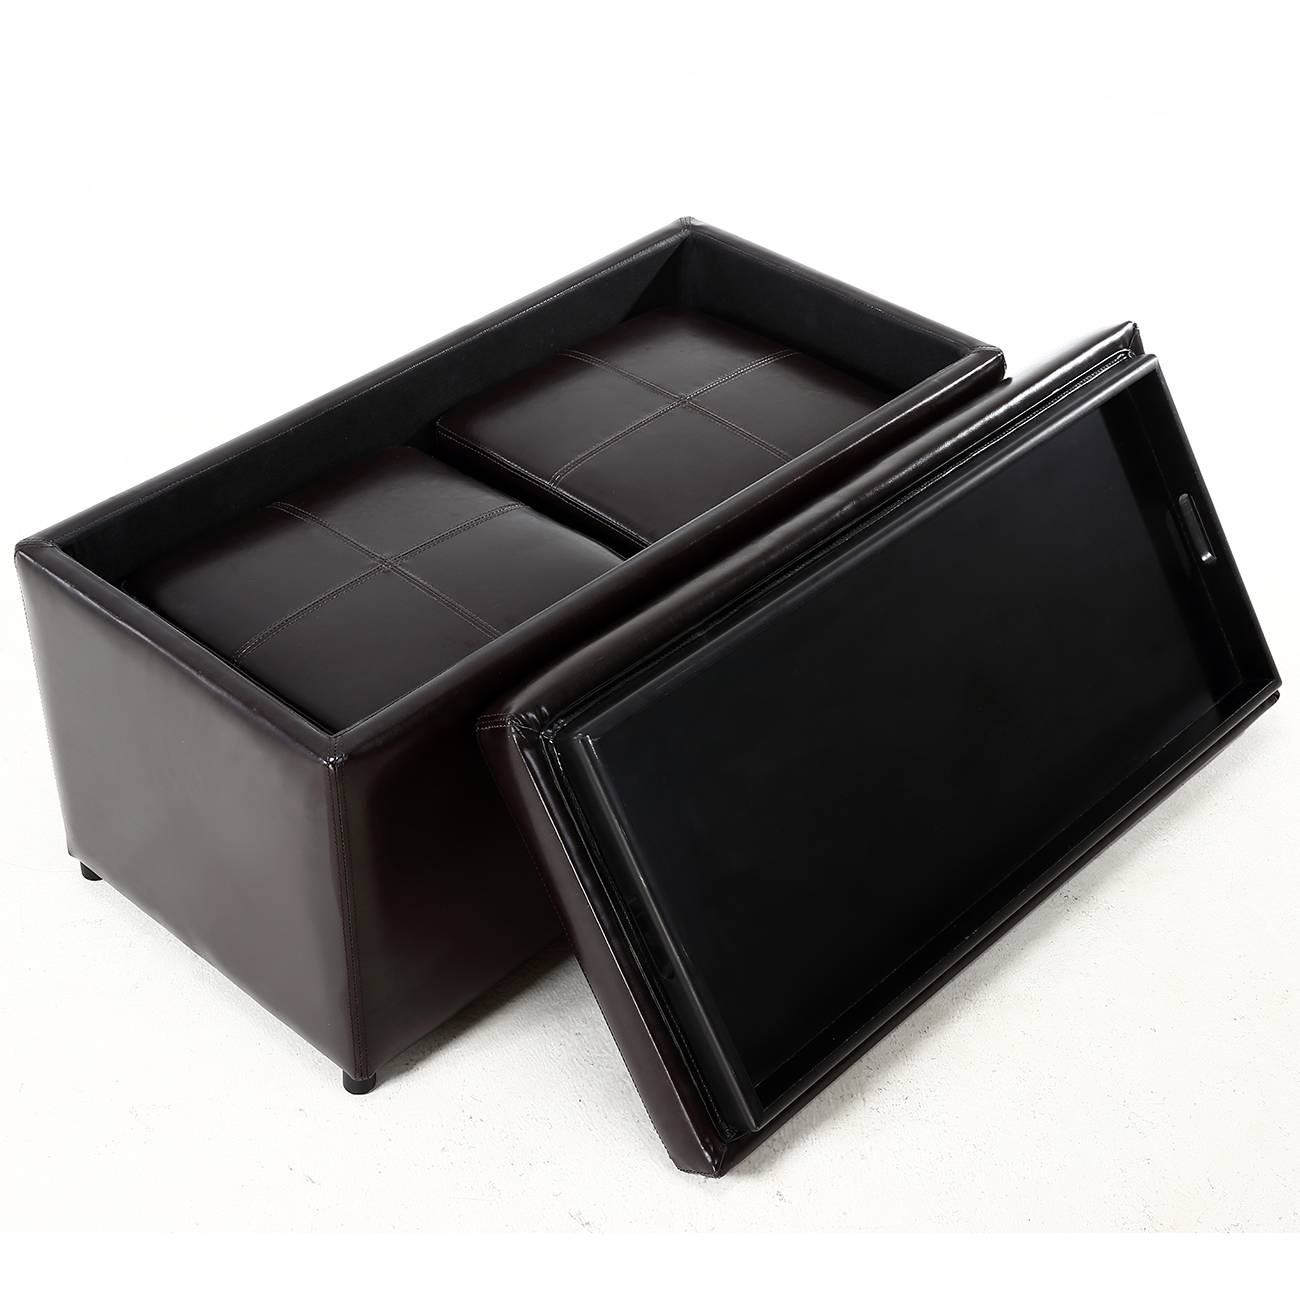 3Pc Ottoman Bench Storage Lid Tray Footrest Coffee Table Black for Coffee Table Footrests (Image 3 of 30)